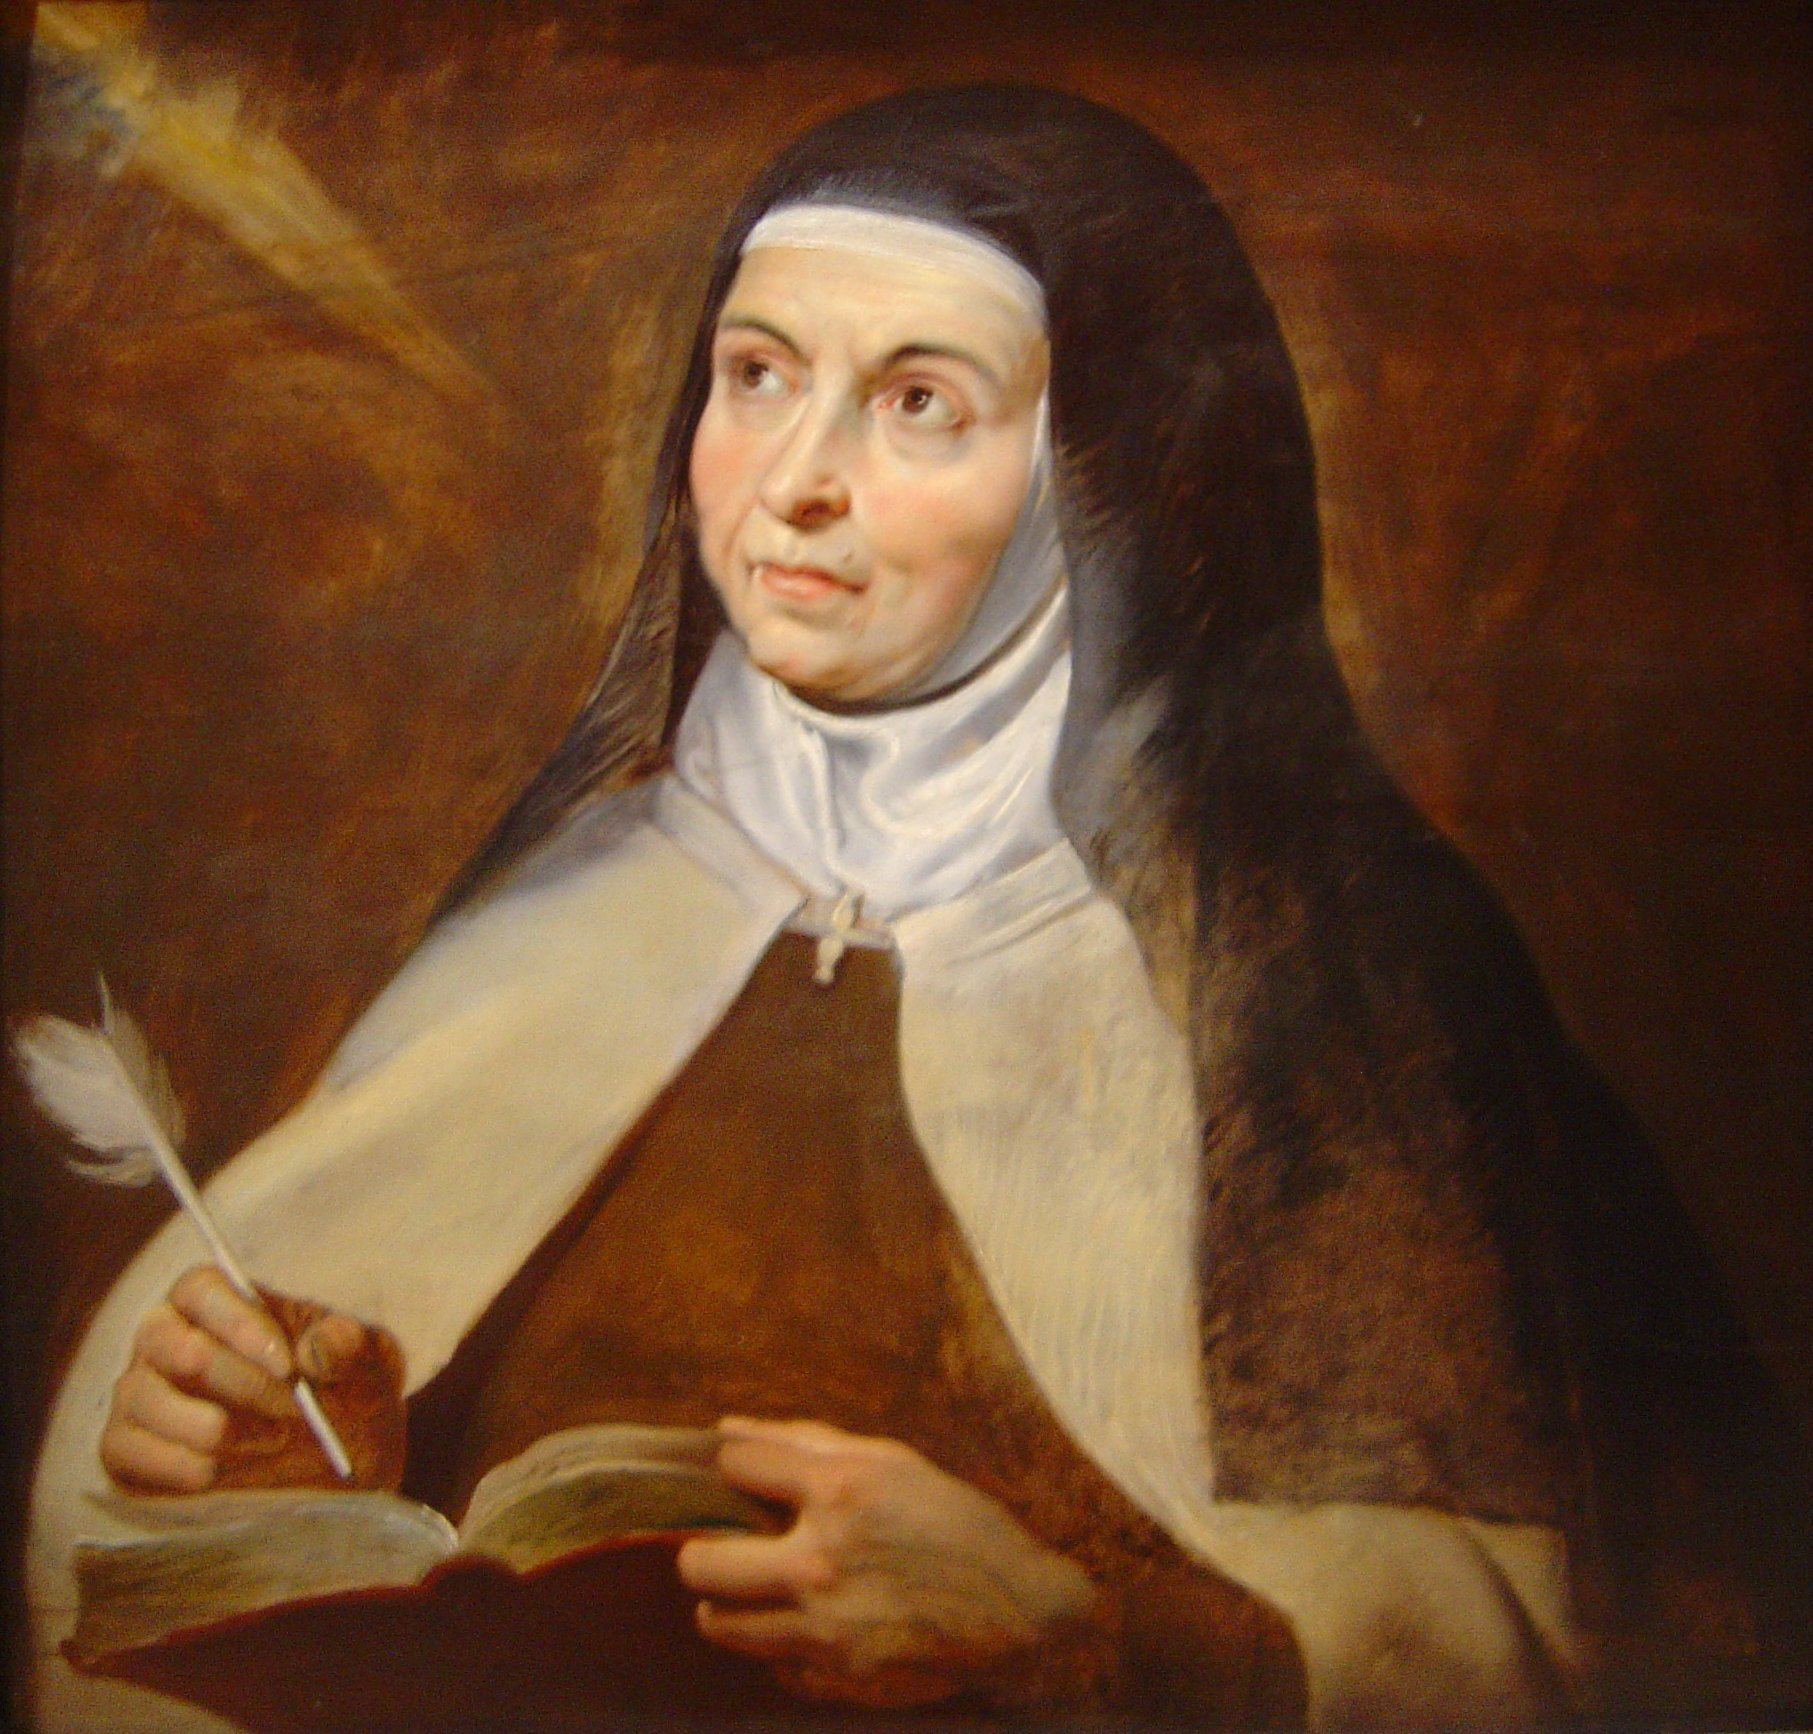 http://upload.wikimedia.org/wikipedia/commons/2/2b/Teresa_of_Avila_dsc01644.jpg